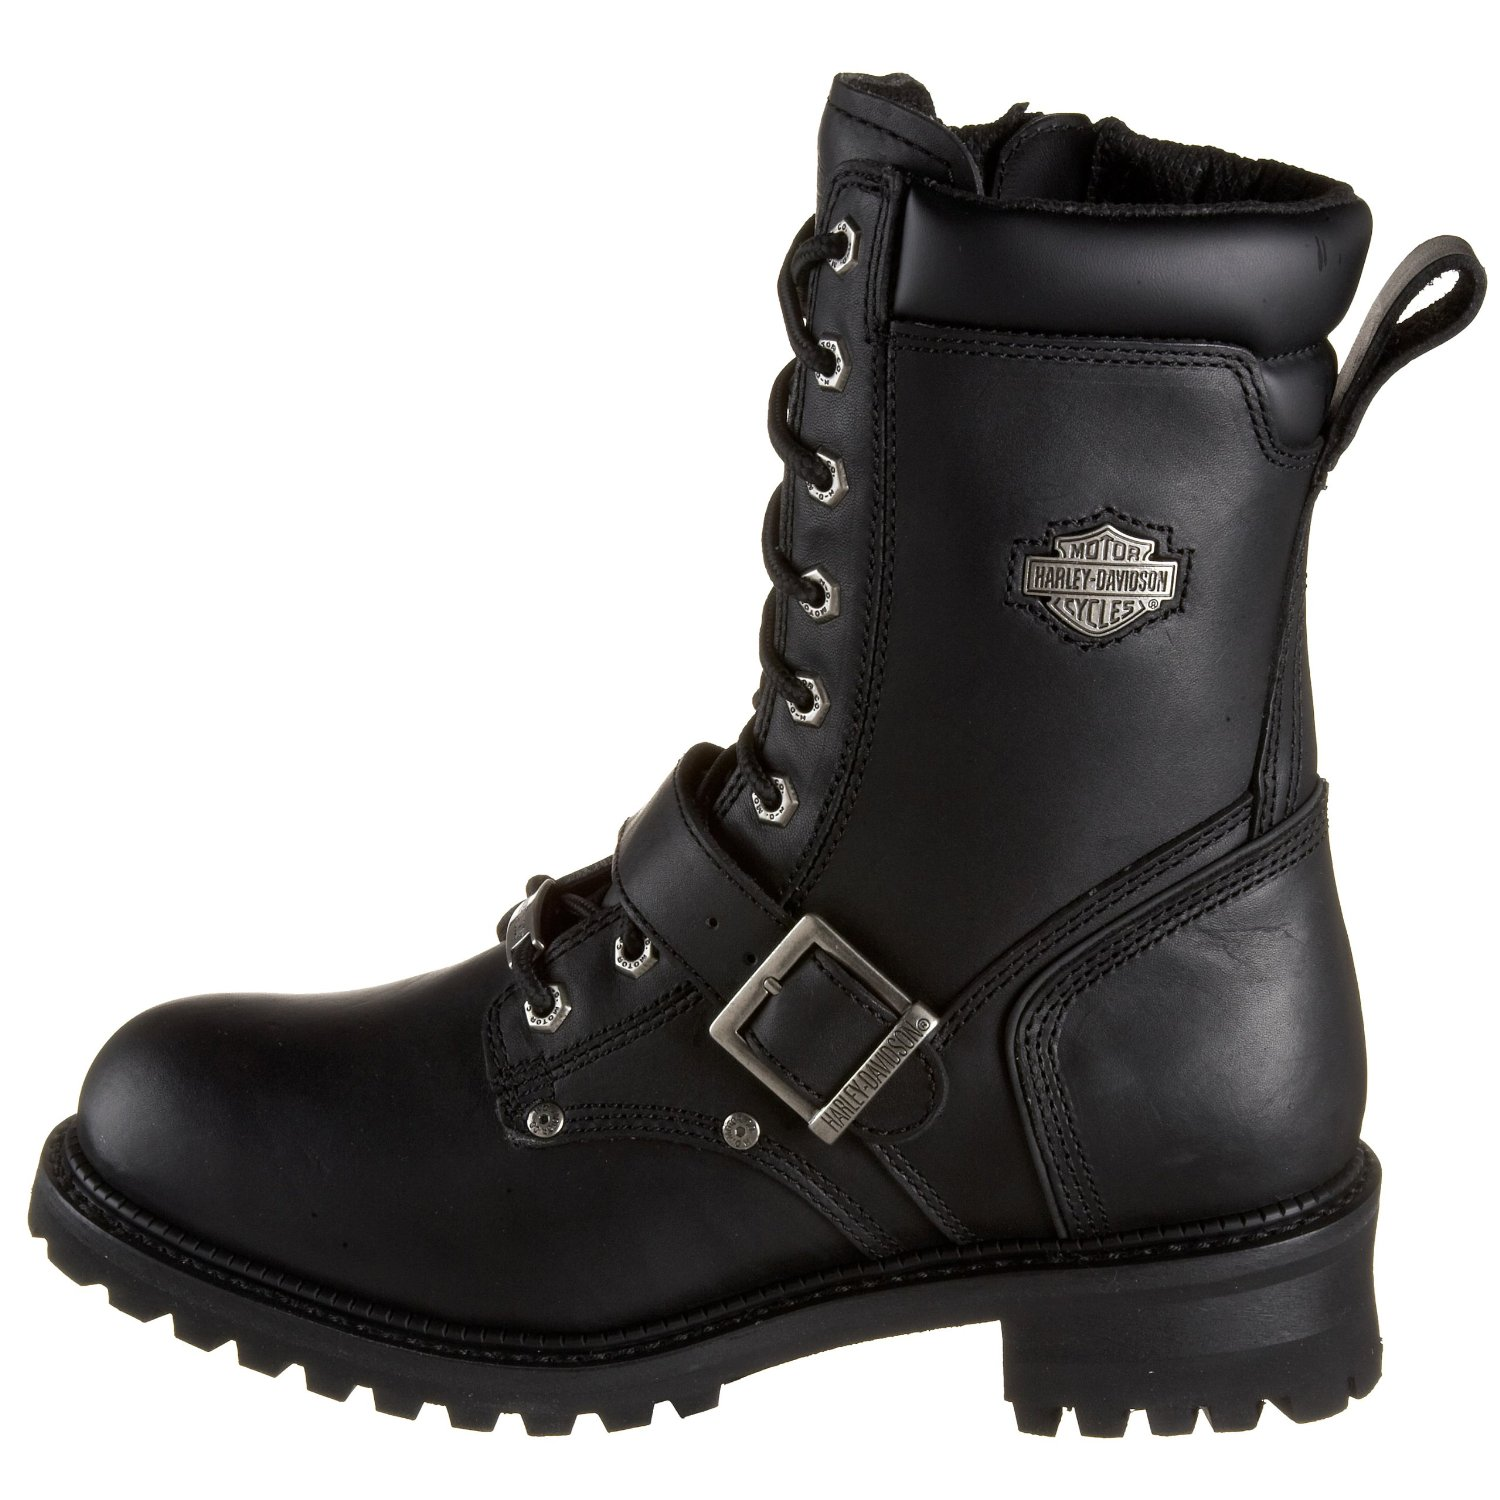 Where can i buy harley davidson boots Shoes